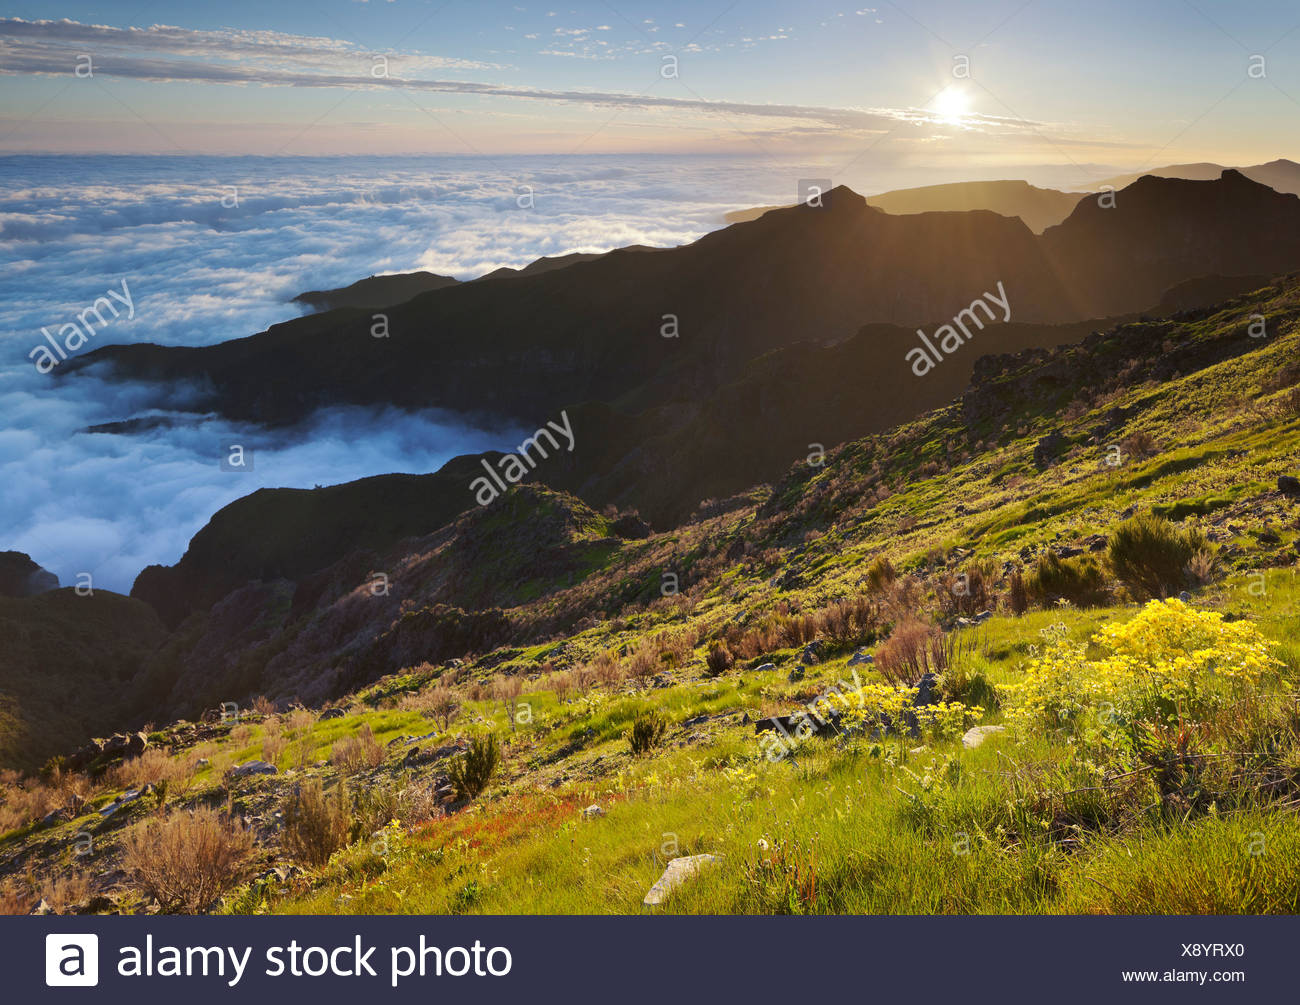 View from Terxeira onto Canario, sea of clouds, Madeira, Portugal - Stock Image